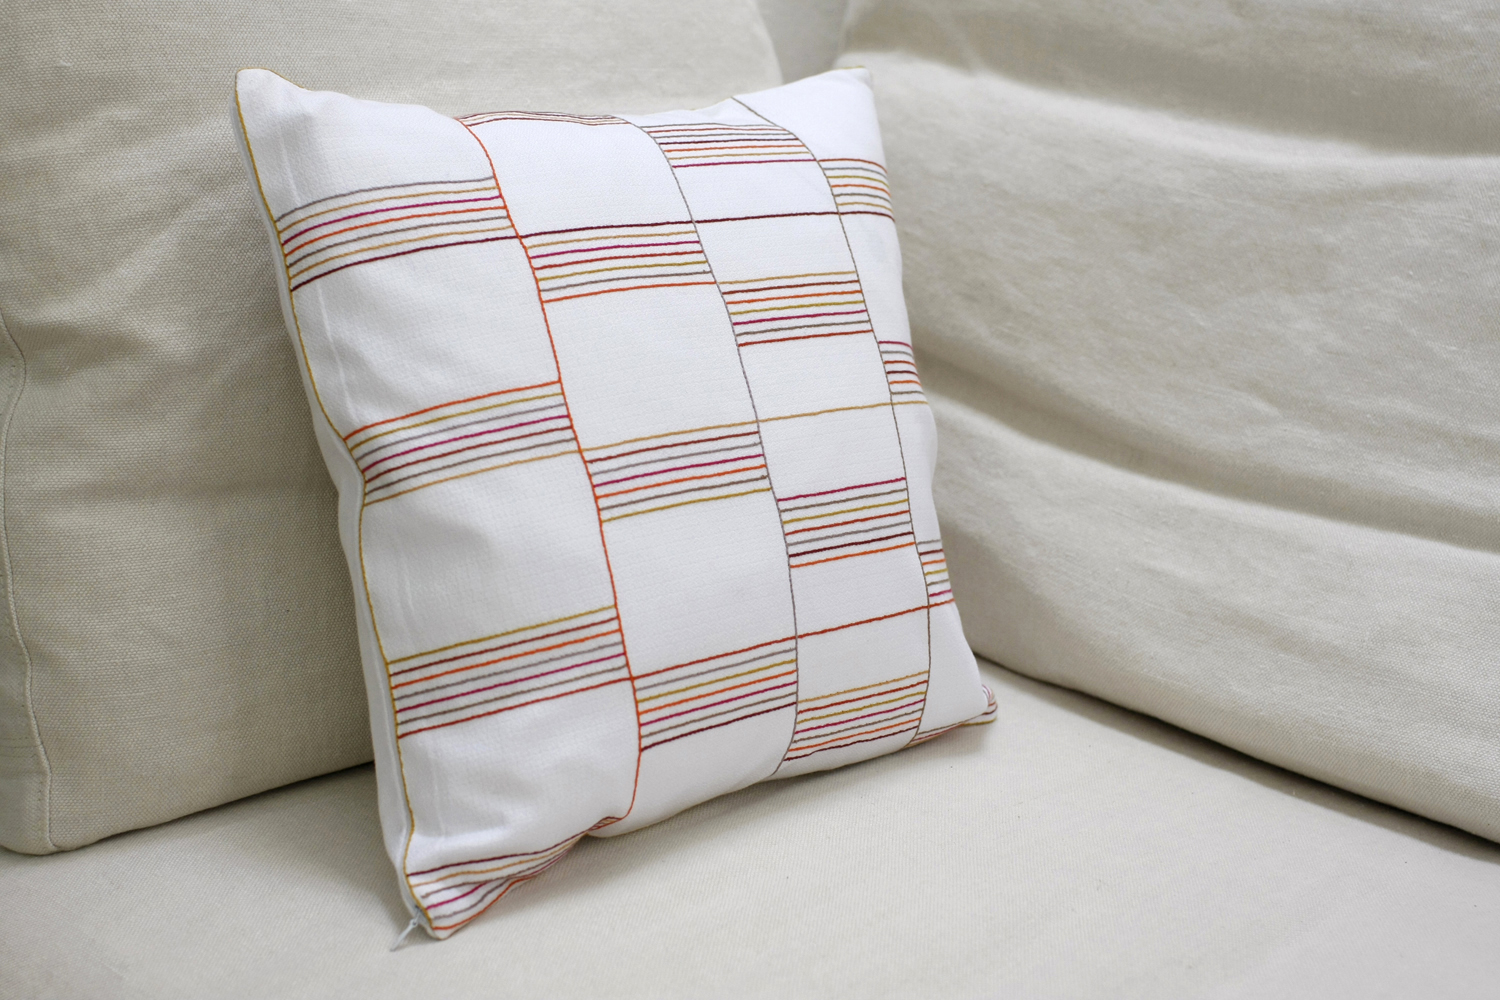 Safi_new_Cushion6_.jpg